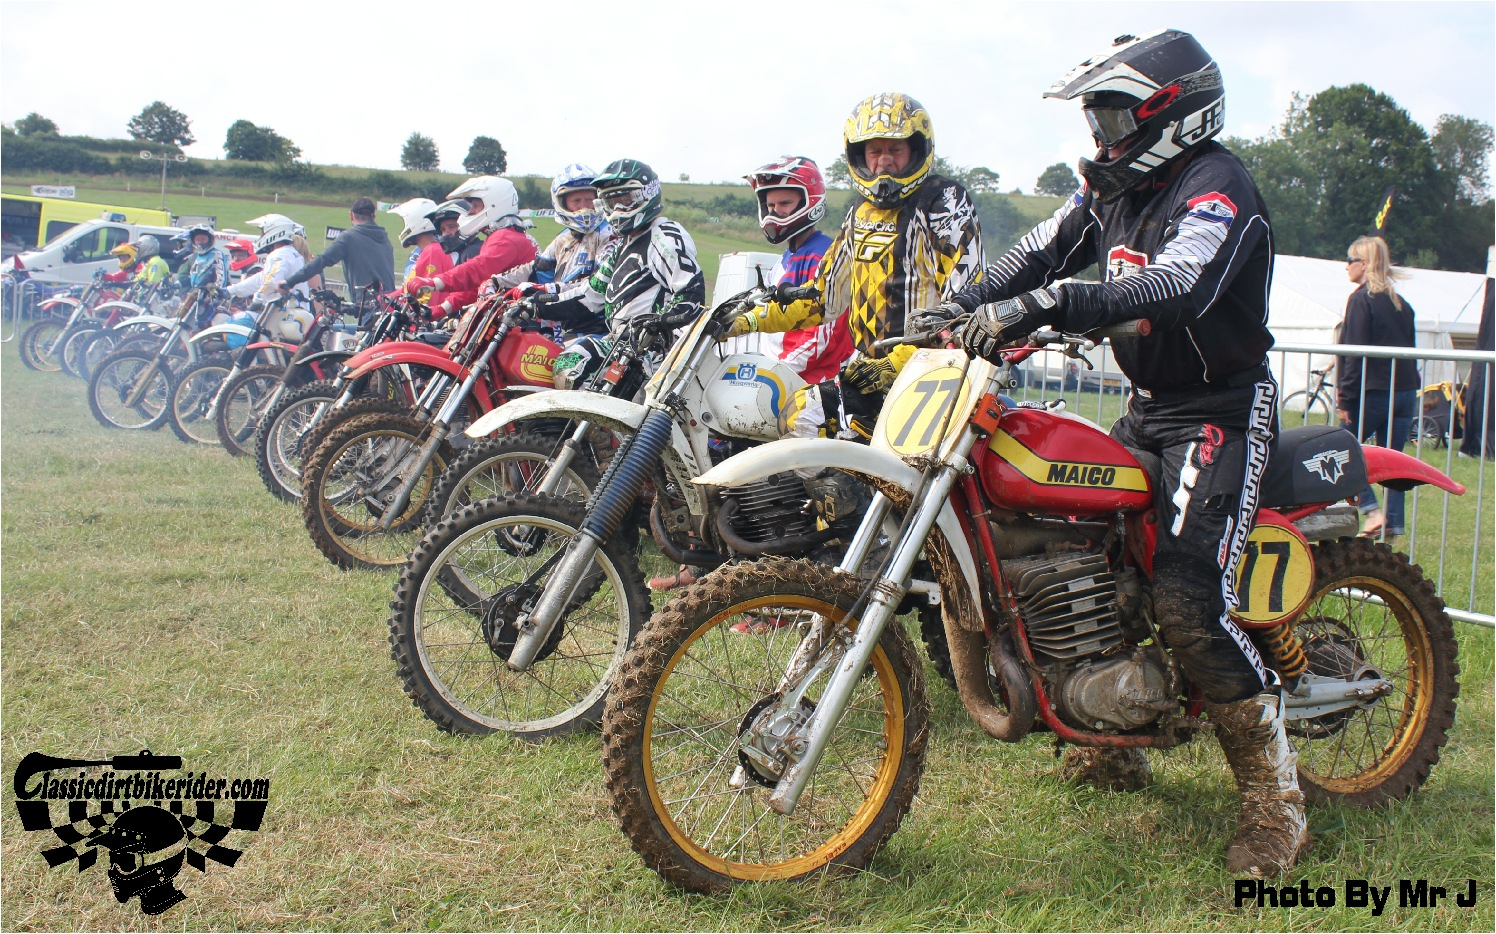 king of the castle 2015 photos Farleigh Castle twinshock motocross classicdirtbikerider.com 23